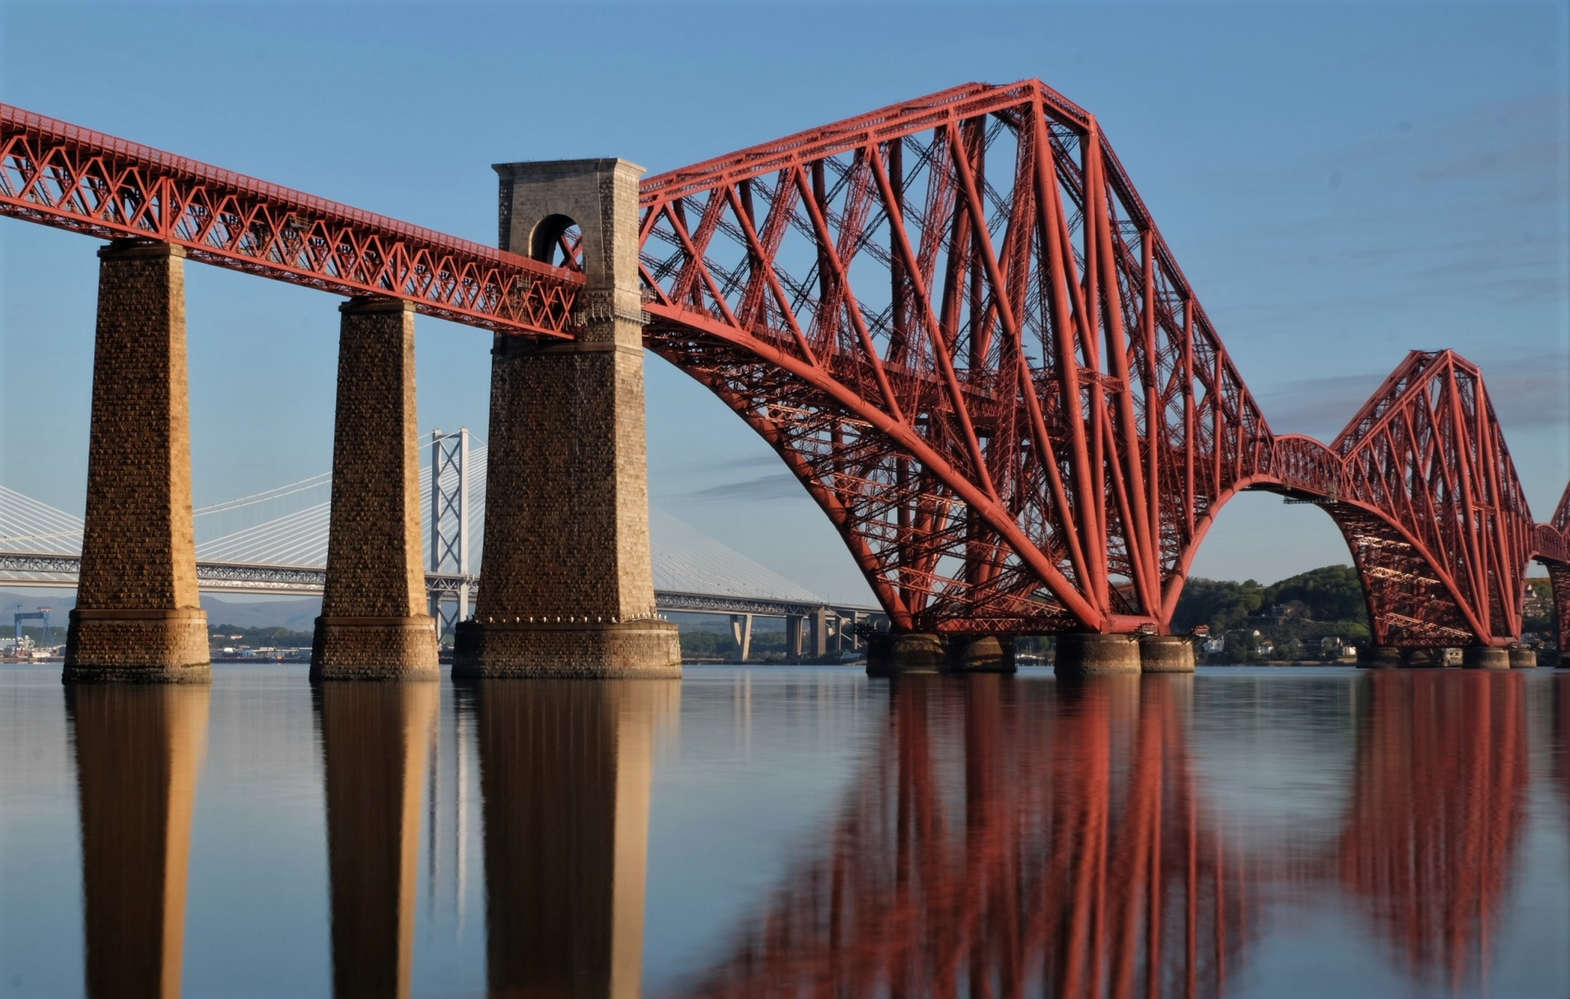 The Forth Bridge in scotland from south queensferry